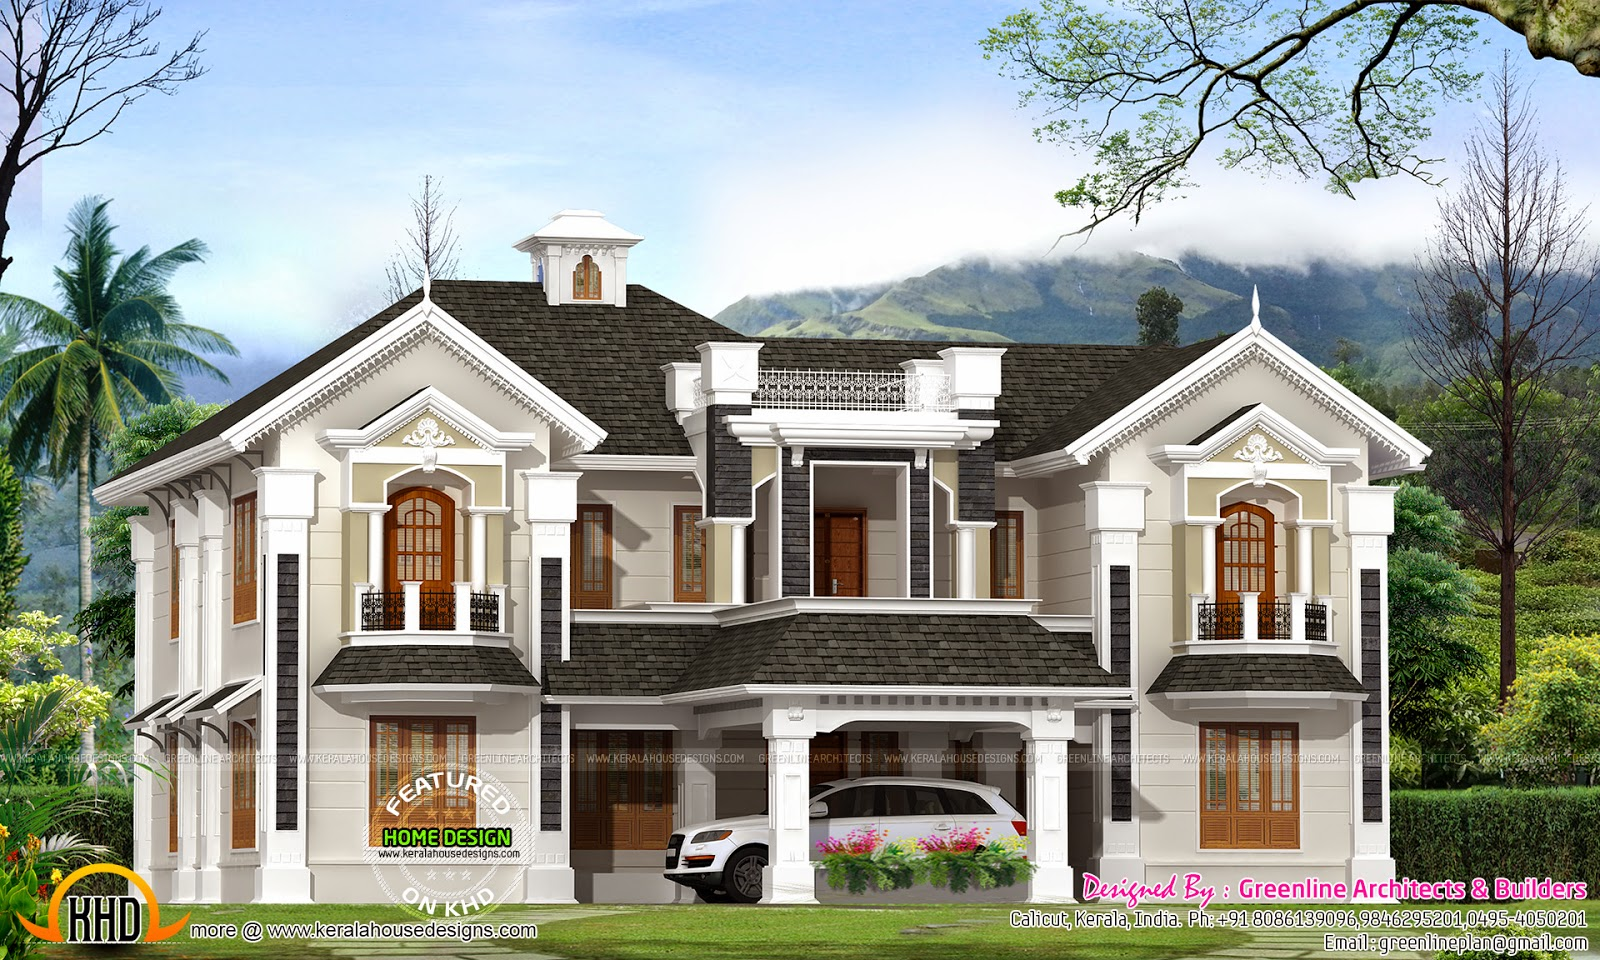 Colonial style house in kerala kerala home design and House plans from home builders